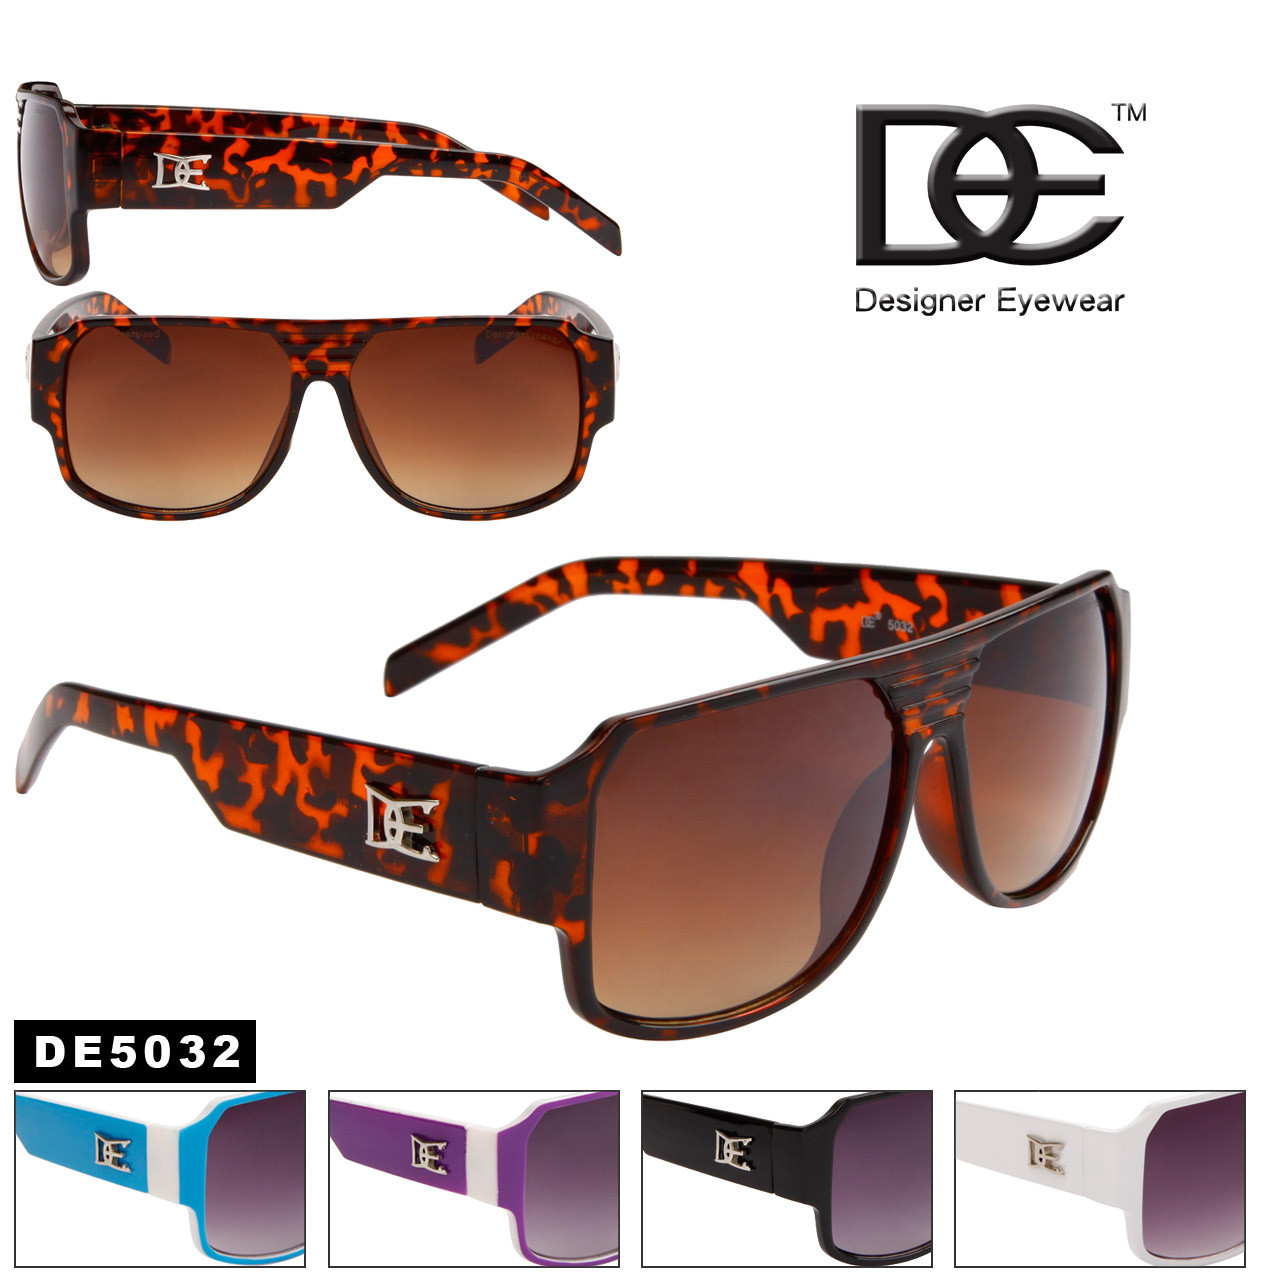 DE™ Wholesale Sunglasses - DE5032